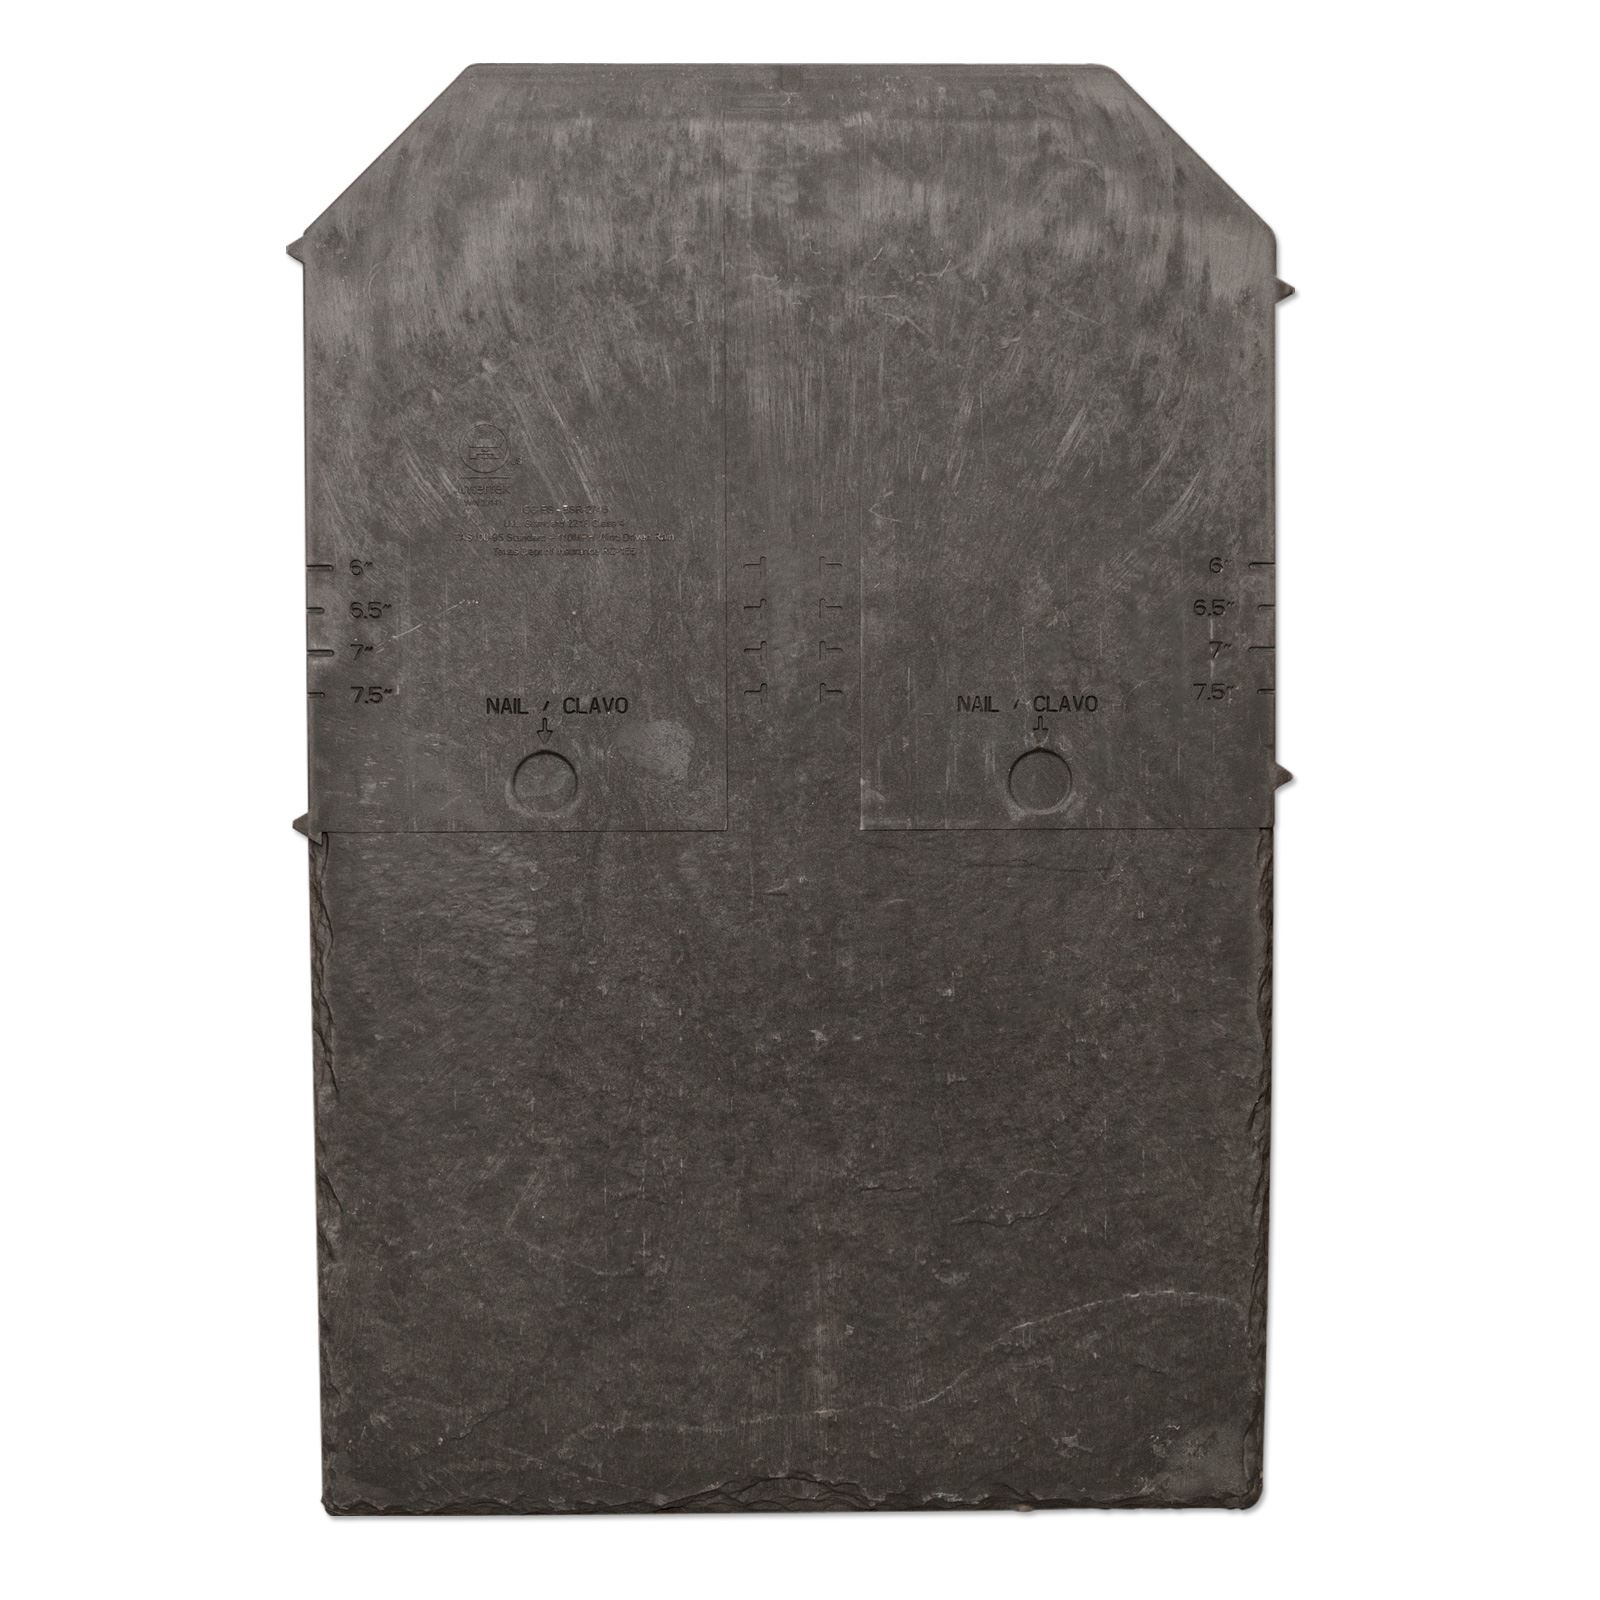 Tapco Slate Roof Tile Synthetic Plastic Composite Truly Pvc